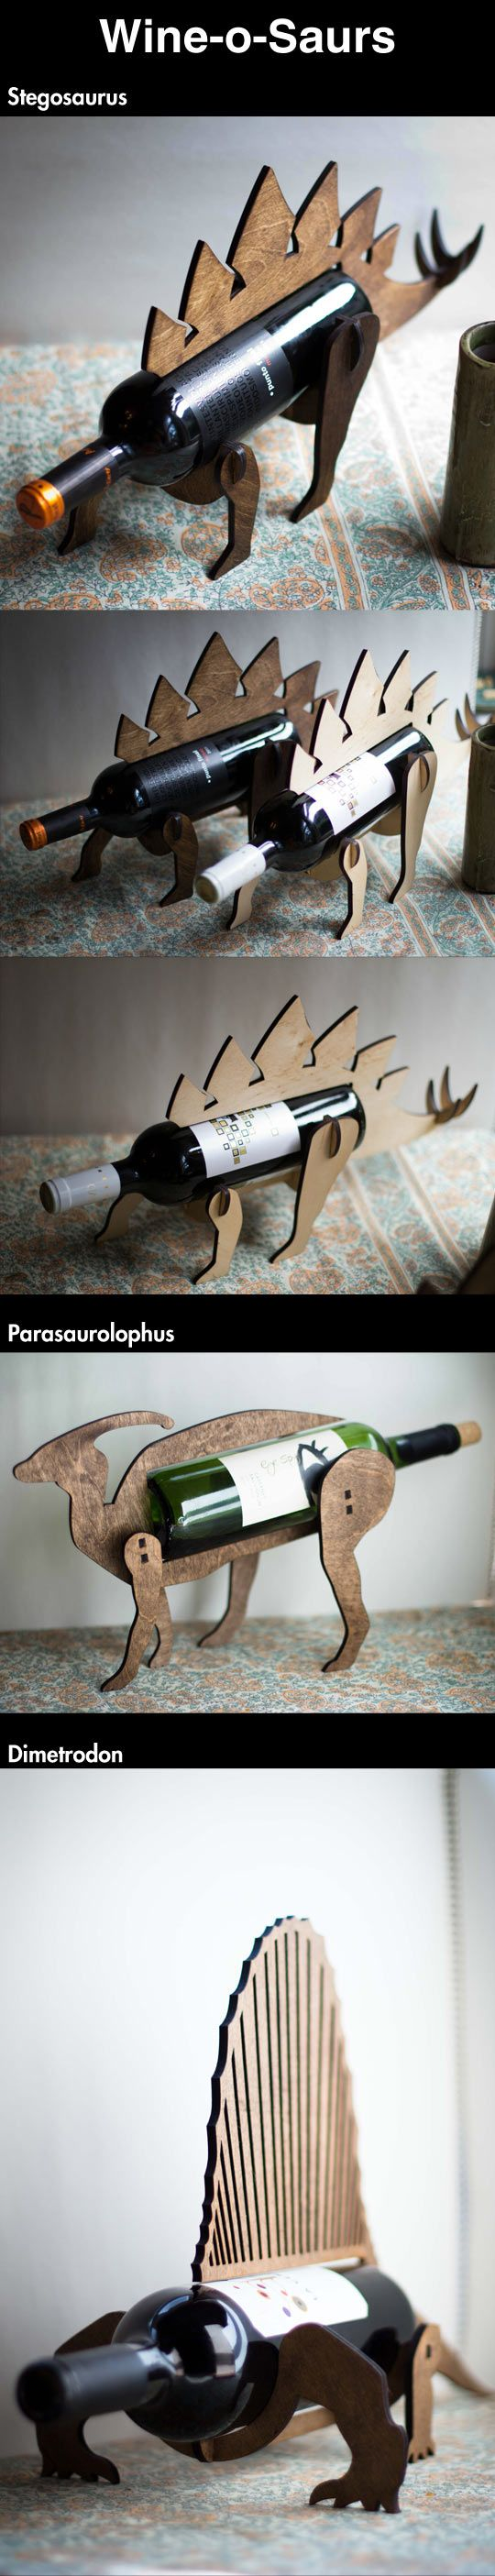 Wine-o-saurs. Yes please.